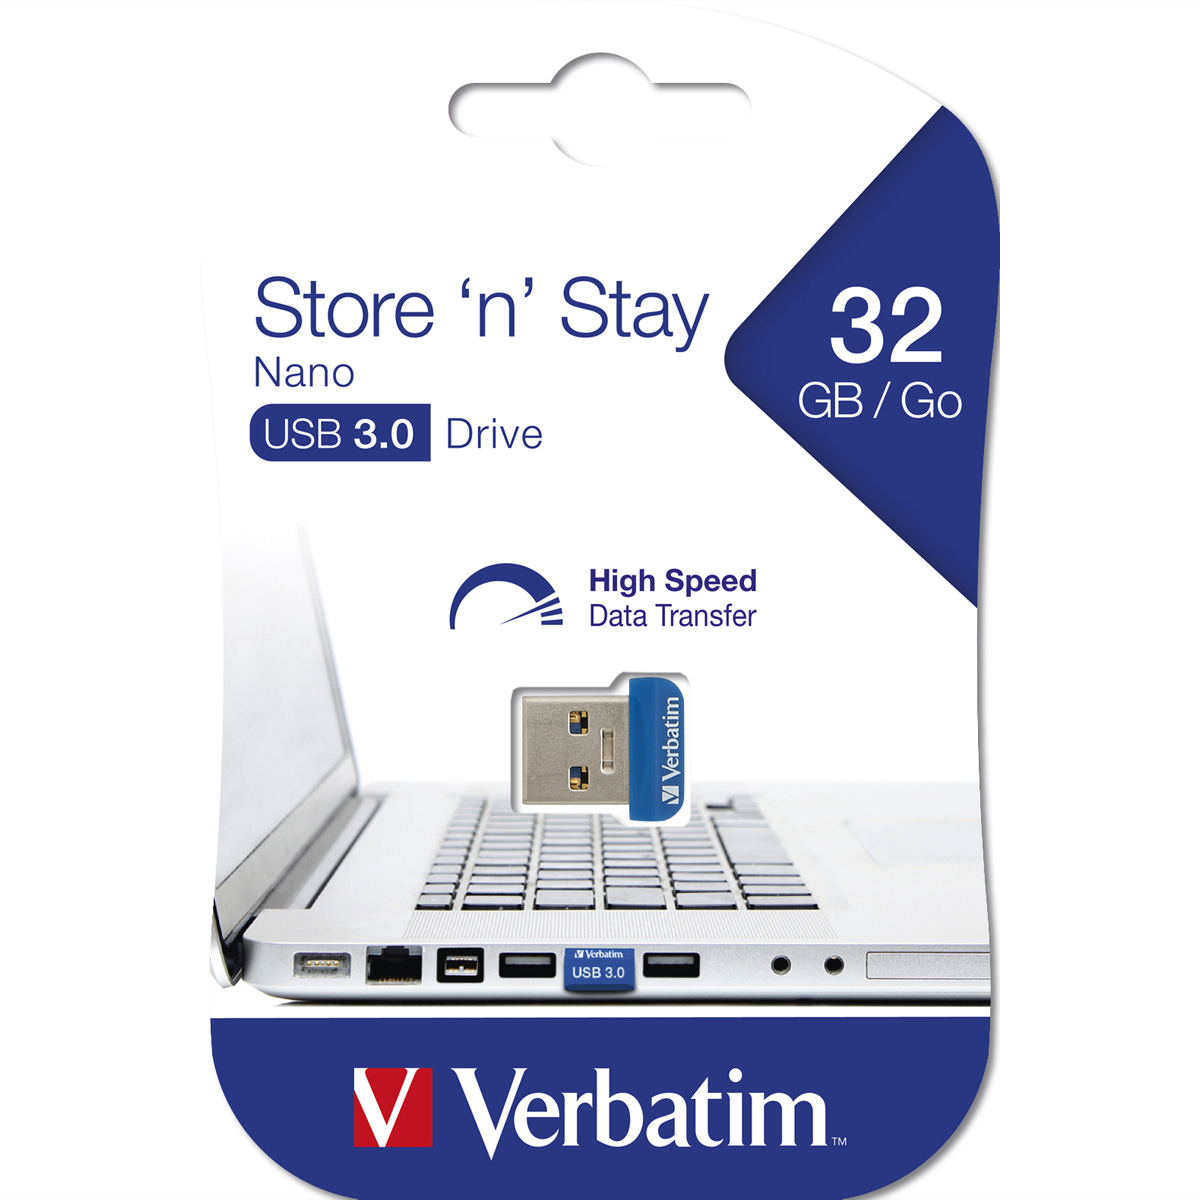 VERBATIM Store ''n'' Stay Nano USB 3.0, 32GB